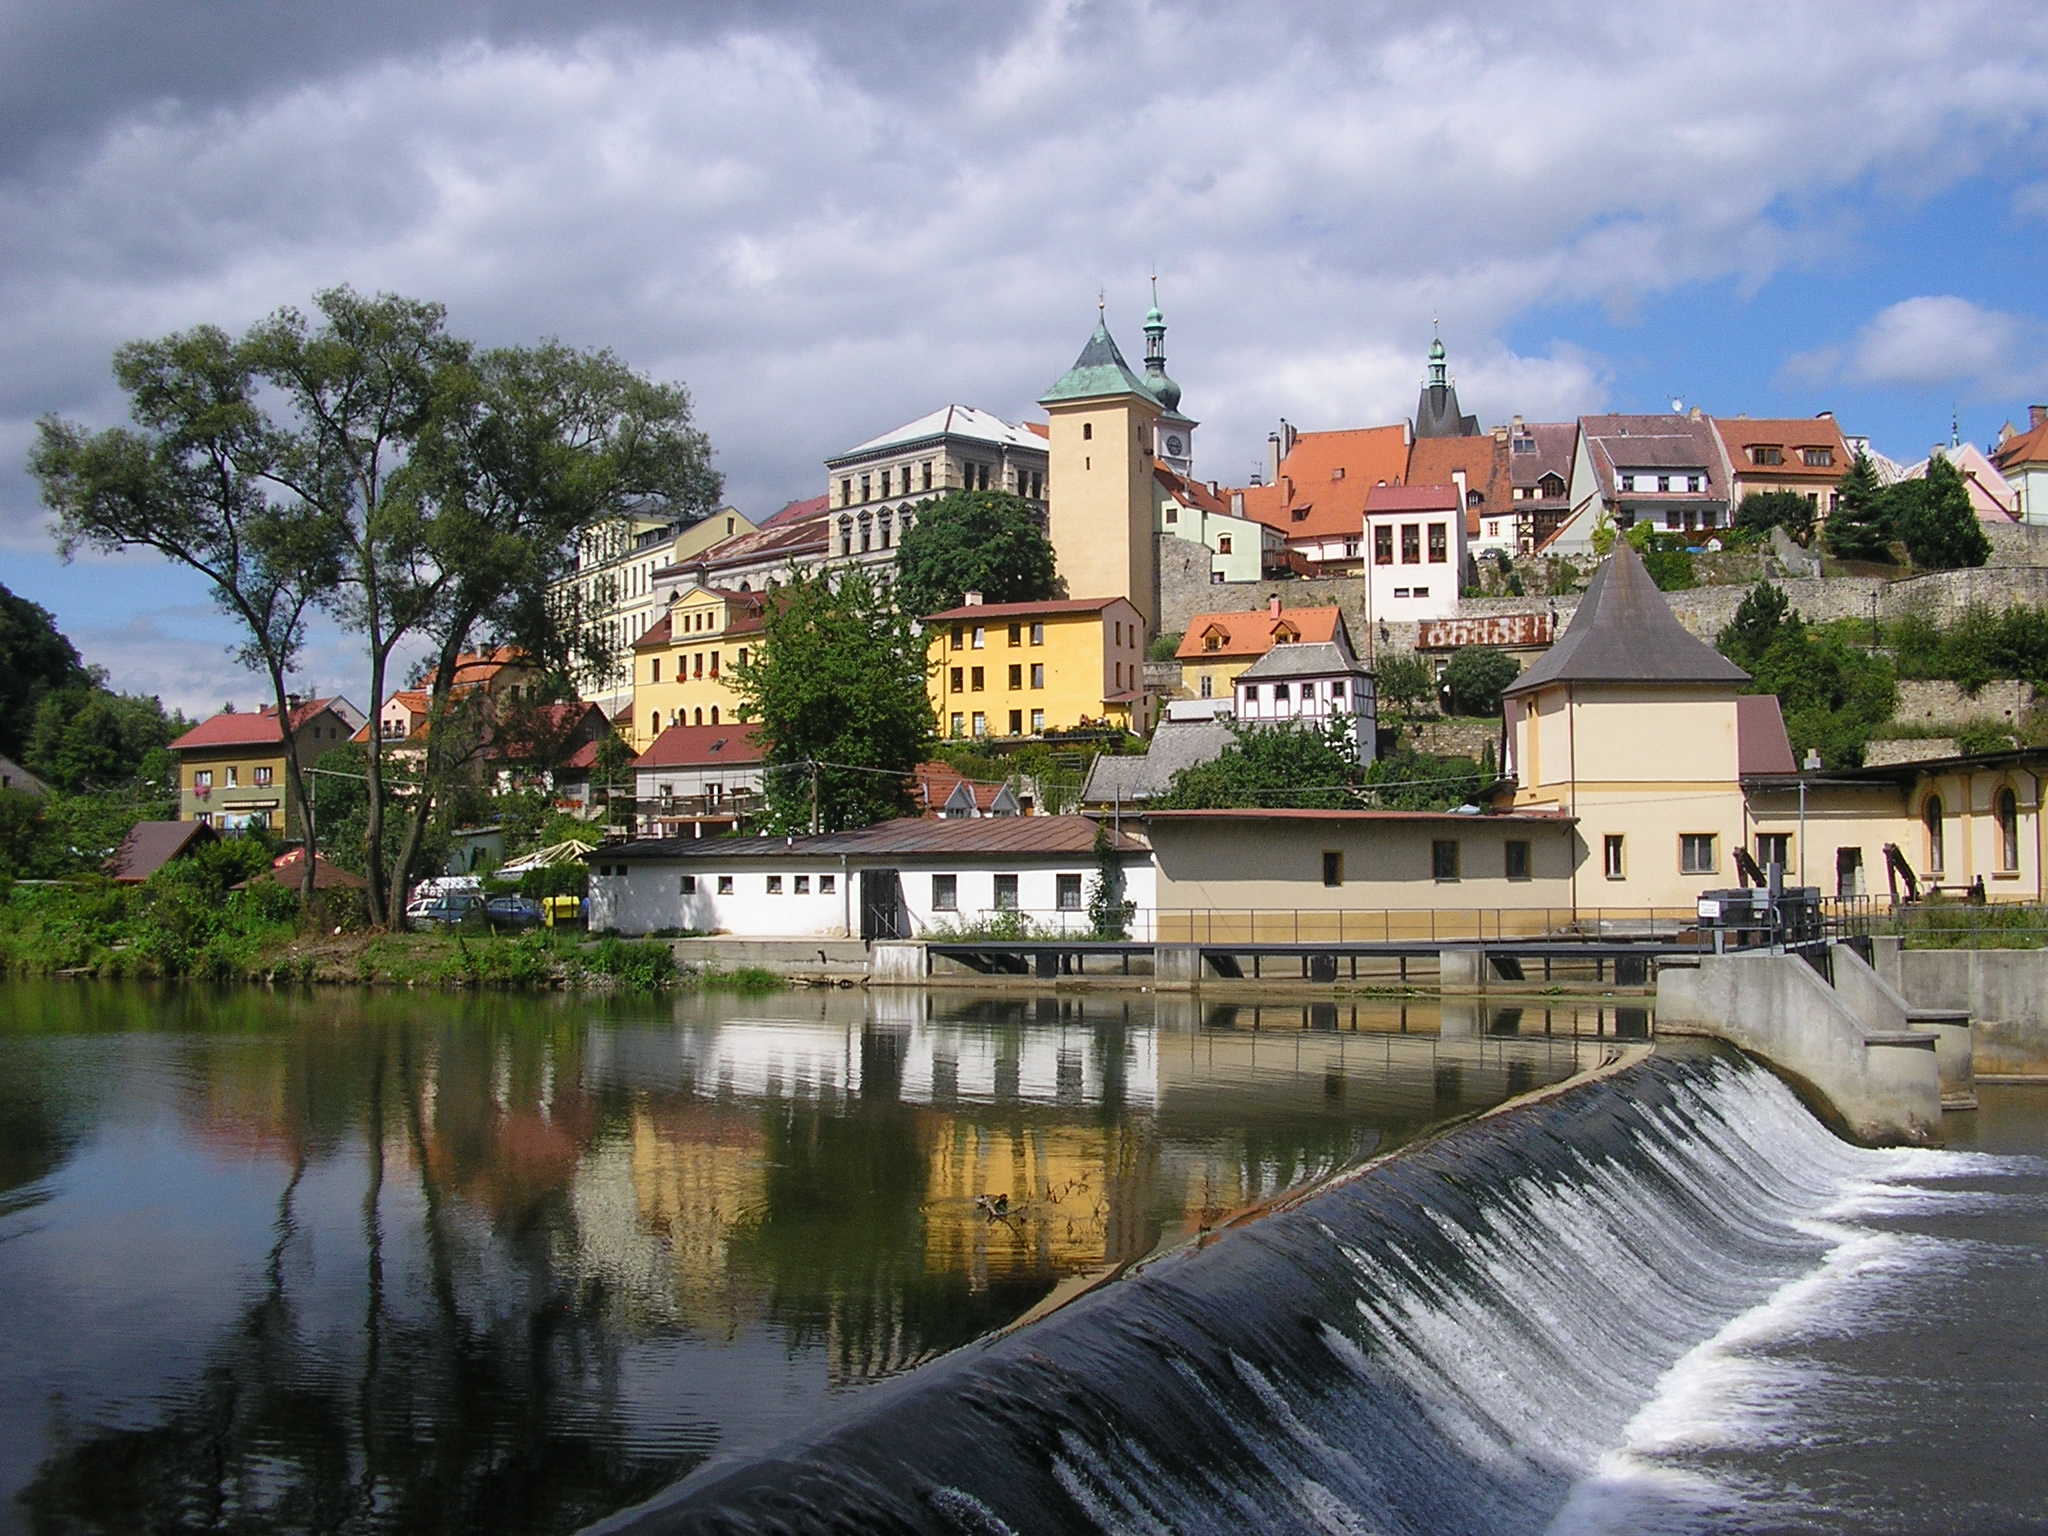 Loket, Czech Republic (Pakos - Creative Commons)